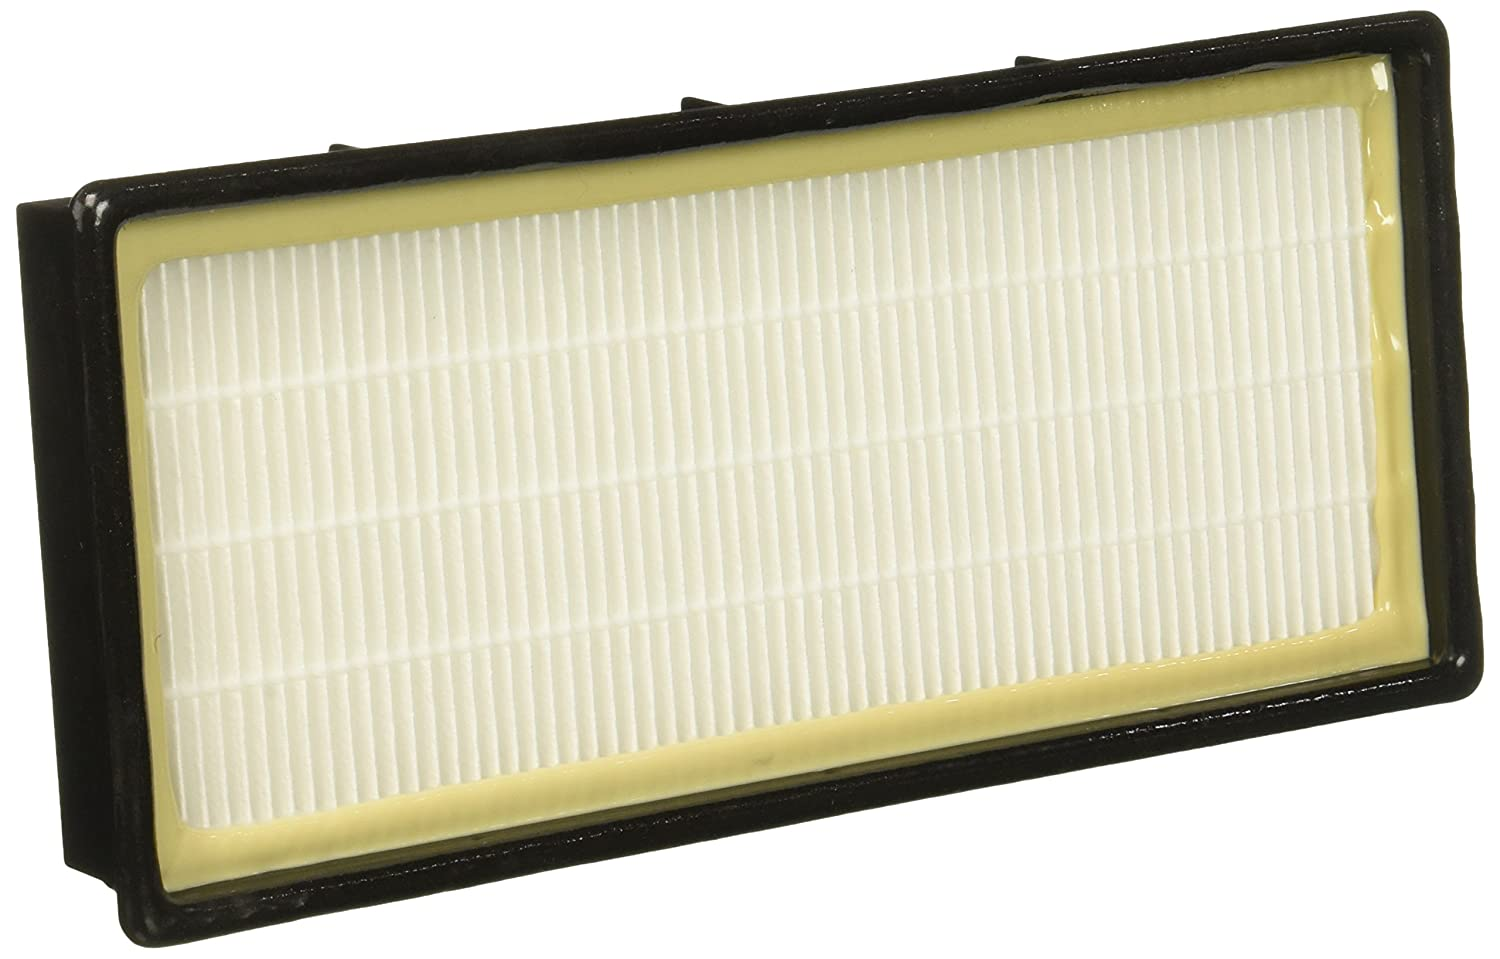 1 Holmes HEPA Air Cleaner Filter Designed To Fit Holmes, HoneyWell, VICKS, Compare To Filter Part # 16216, HRC1 & Holmes Part # HAPF30, HAPF30D, Designed & Engineered by Crucial Air 608819399249